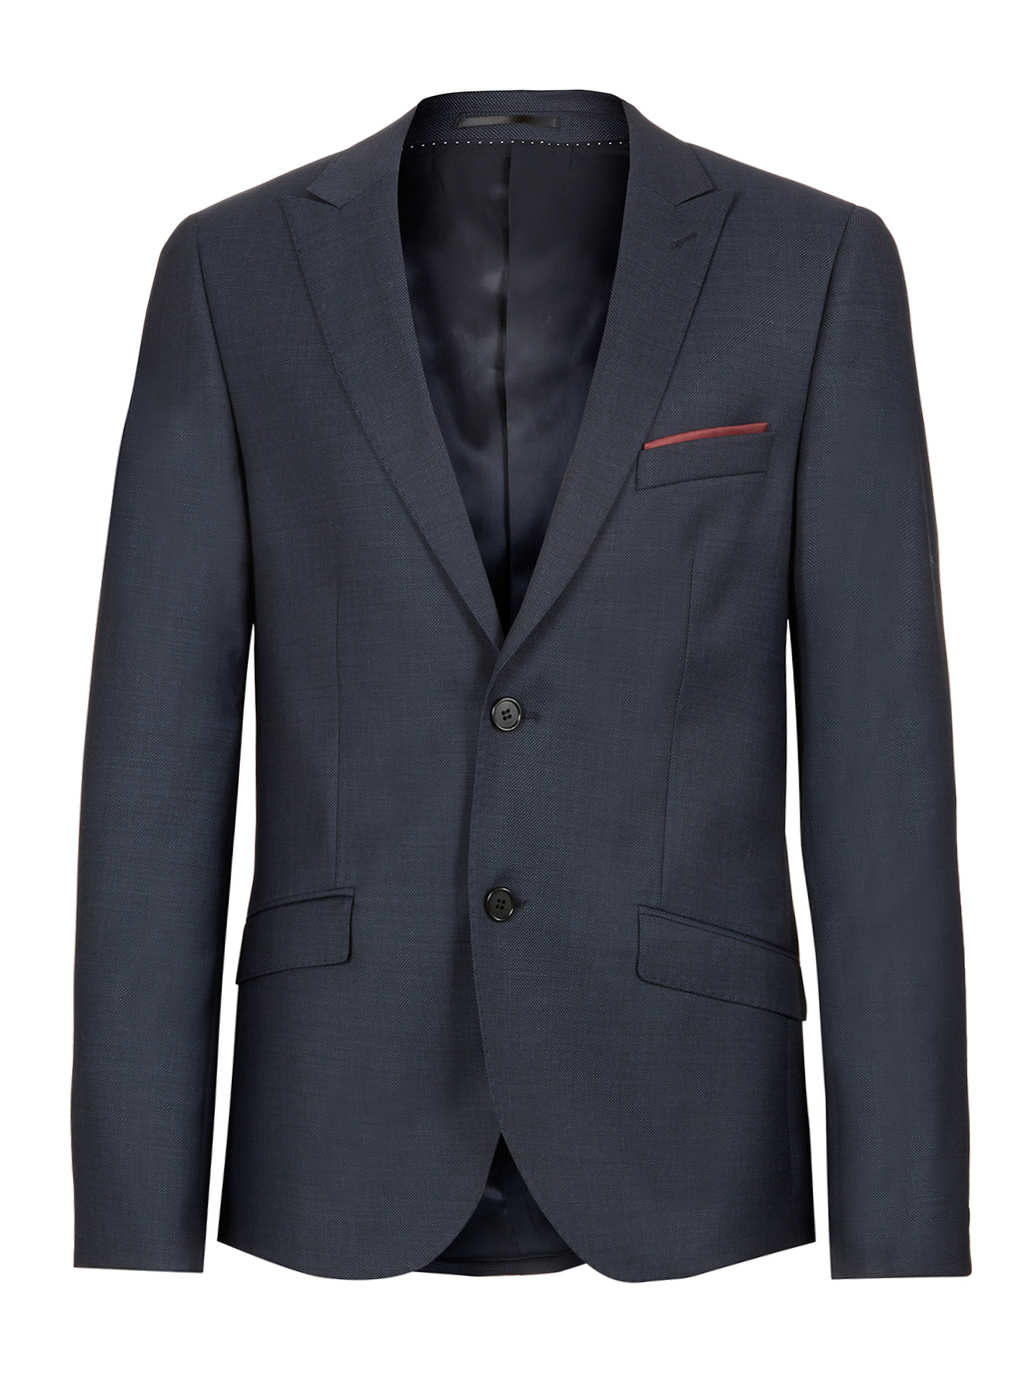 Fit: Find a coat that fits you well and will sit comfortably over the suit jacket. Style: Check out a few styles before you decide to buy a coat. Peacoat: This coat's double-breasted design works well with a suit.